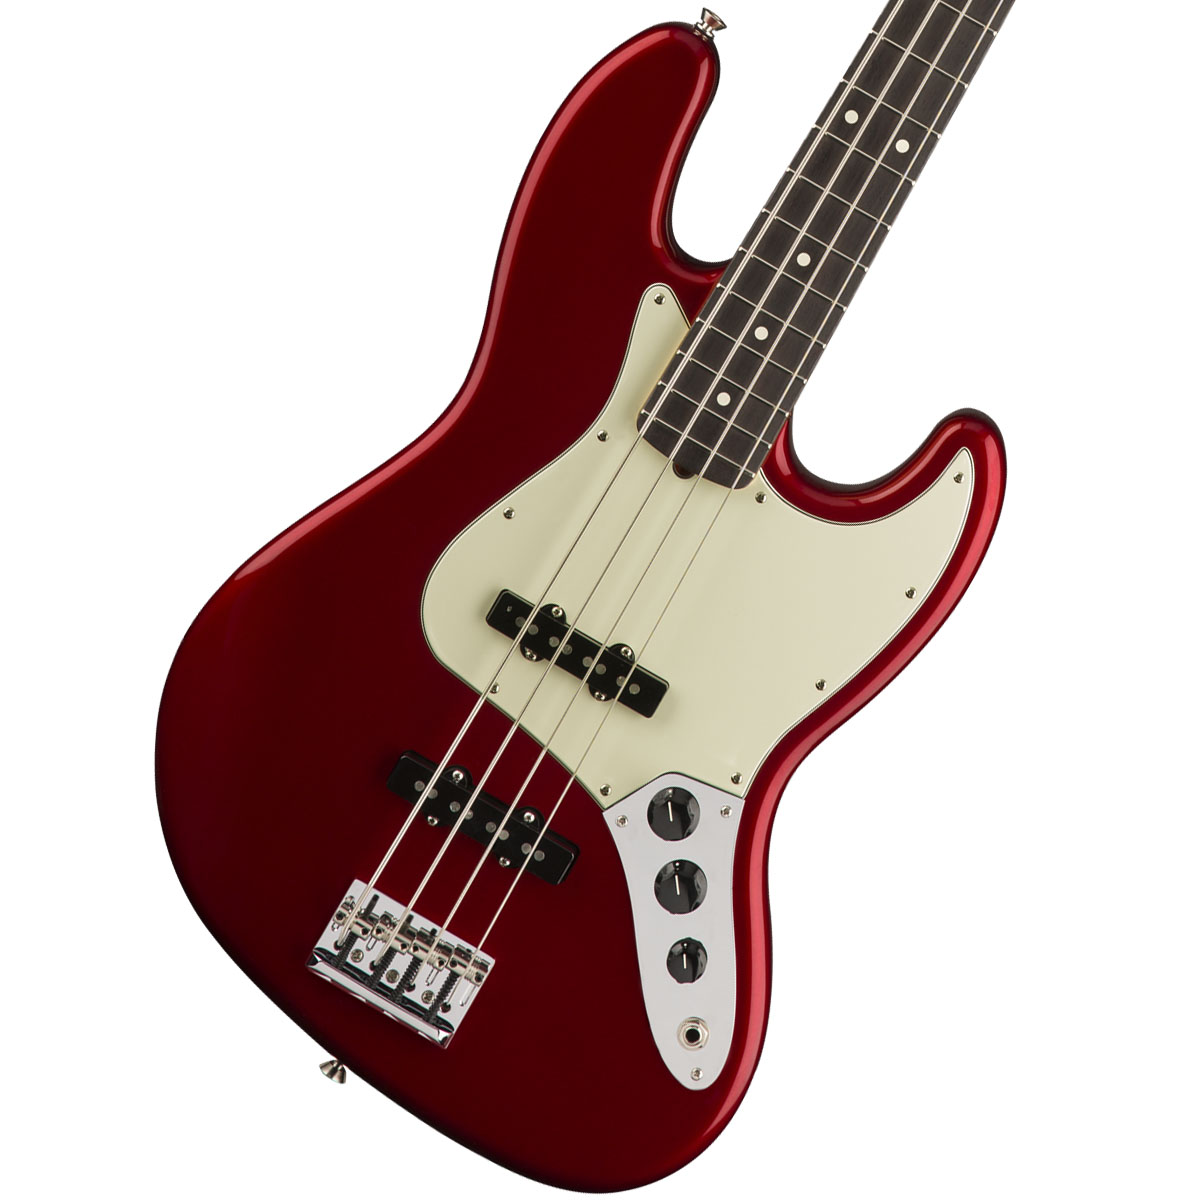 Fender USA / American Professional Jazz Bass Rosewood Fingerboard Candy Apple Red 【お取り寄せ商品】《フェンダー純正グッズを進呈/+79083》